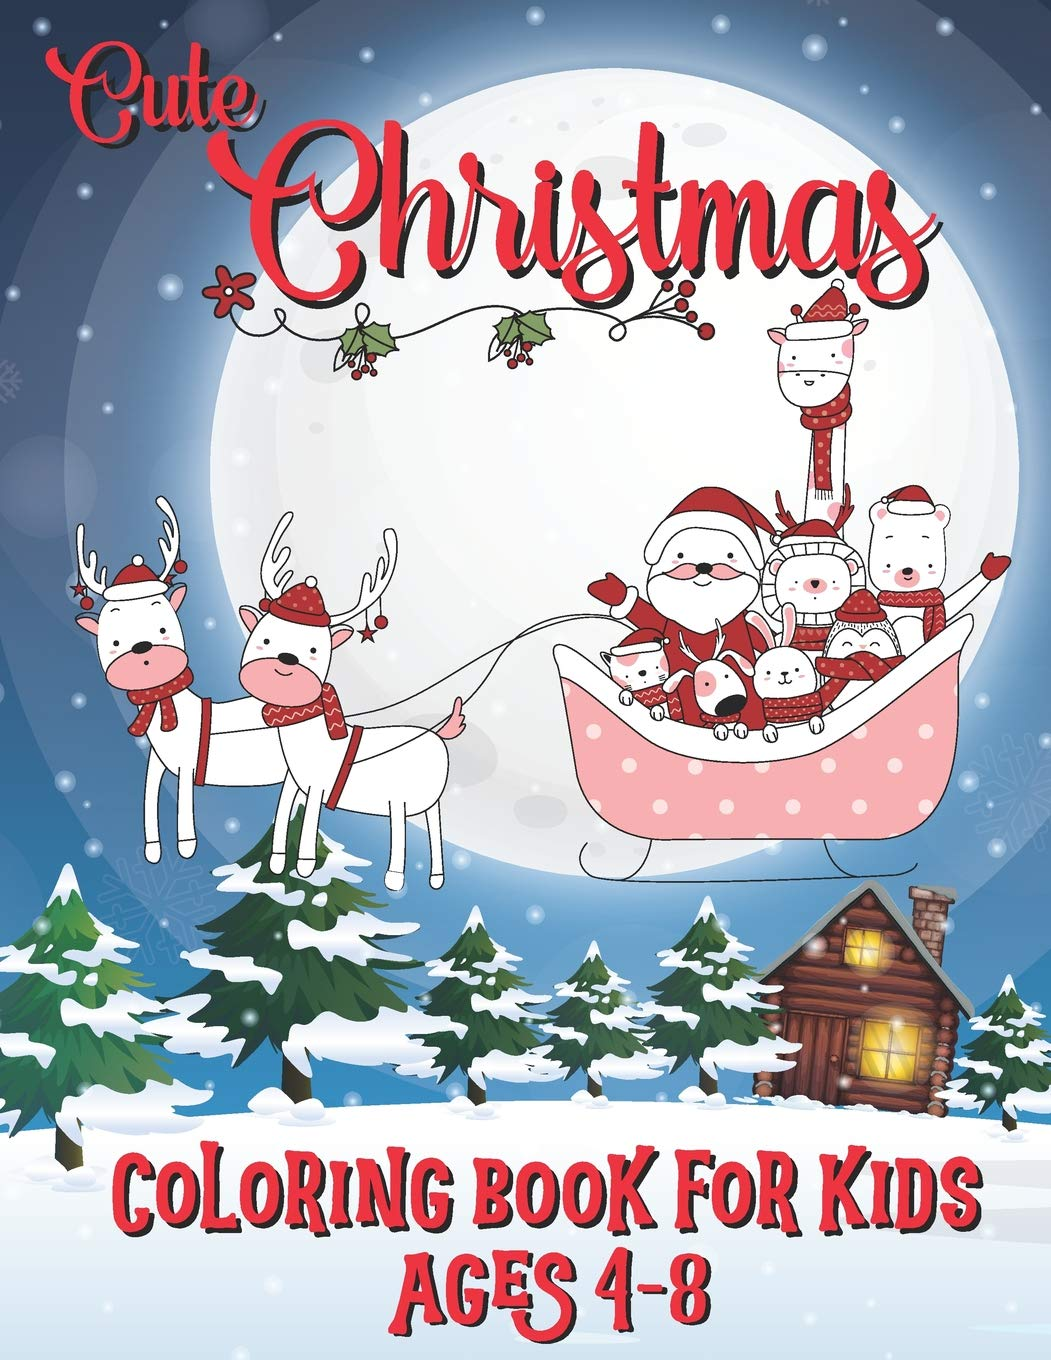 Cute Christmas Coloring Book For Kids Age 4 8 Santa Clause